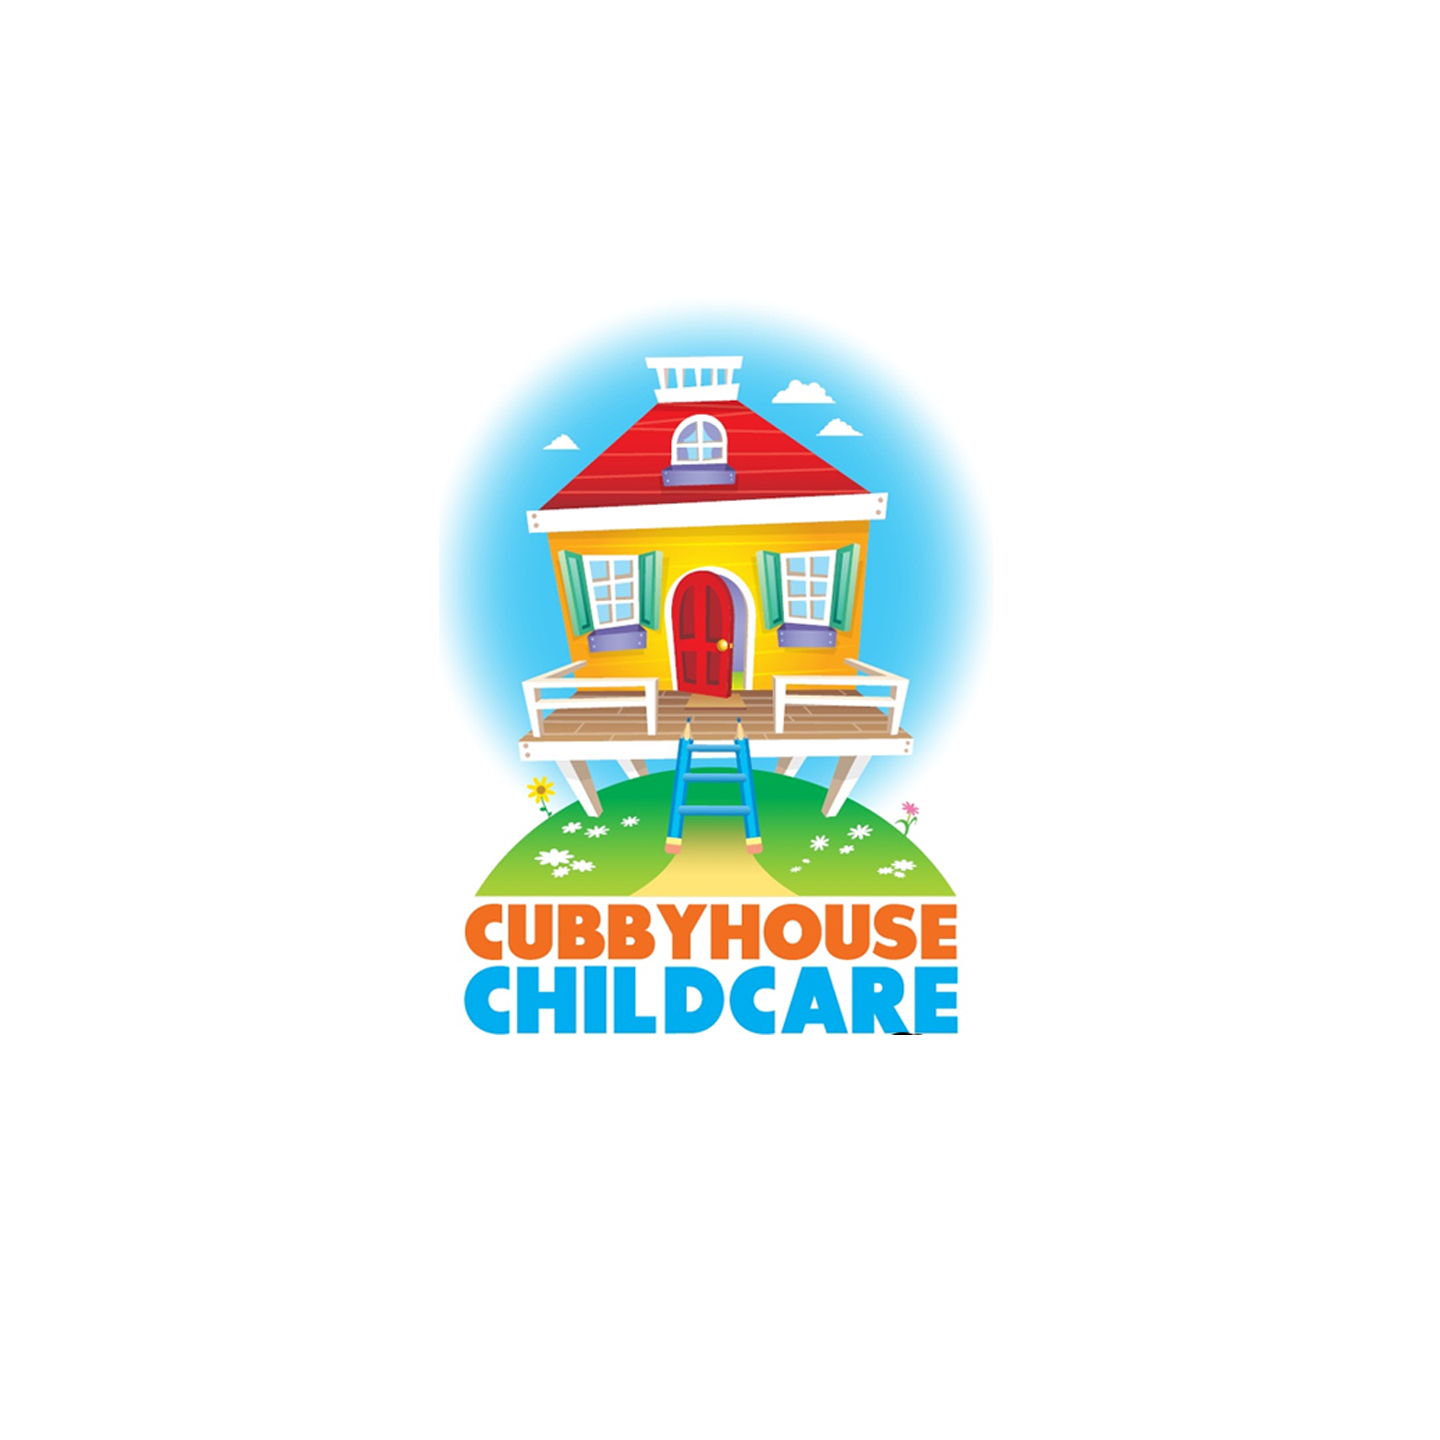 CUBBY HOUSE CHILDCARE